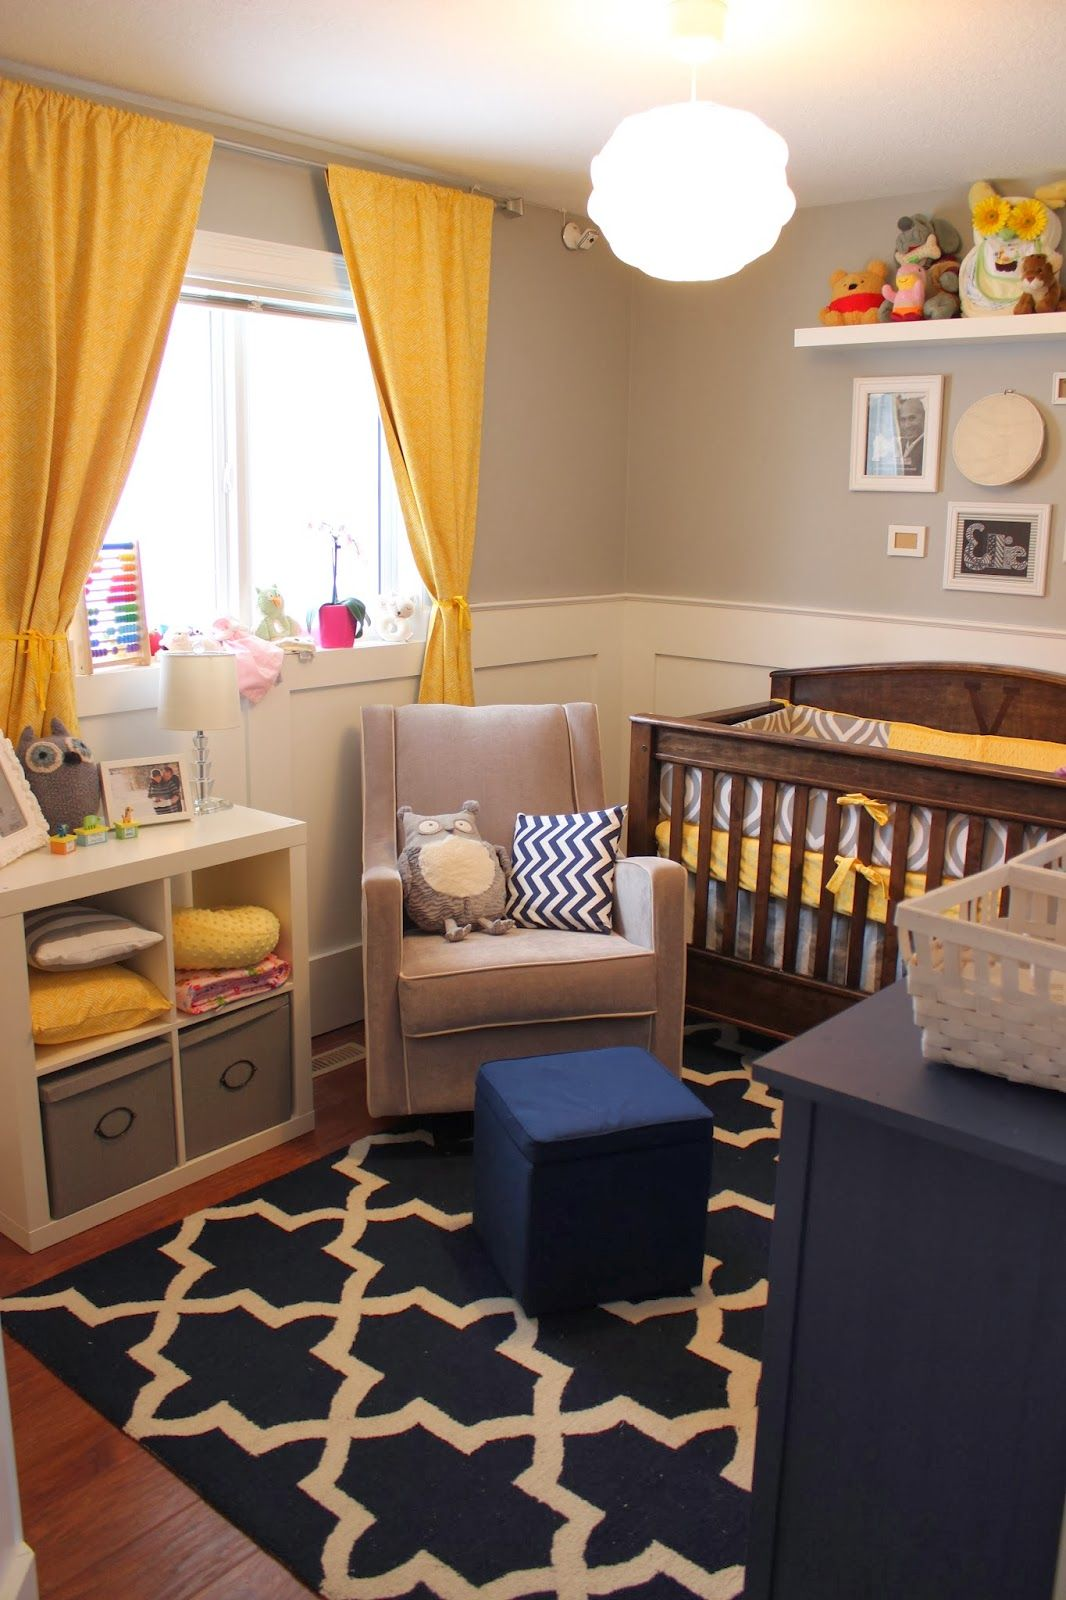 Baby Room Accessories: Not A Fan Of The Decor But This Is The Same Floorplan Of